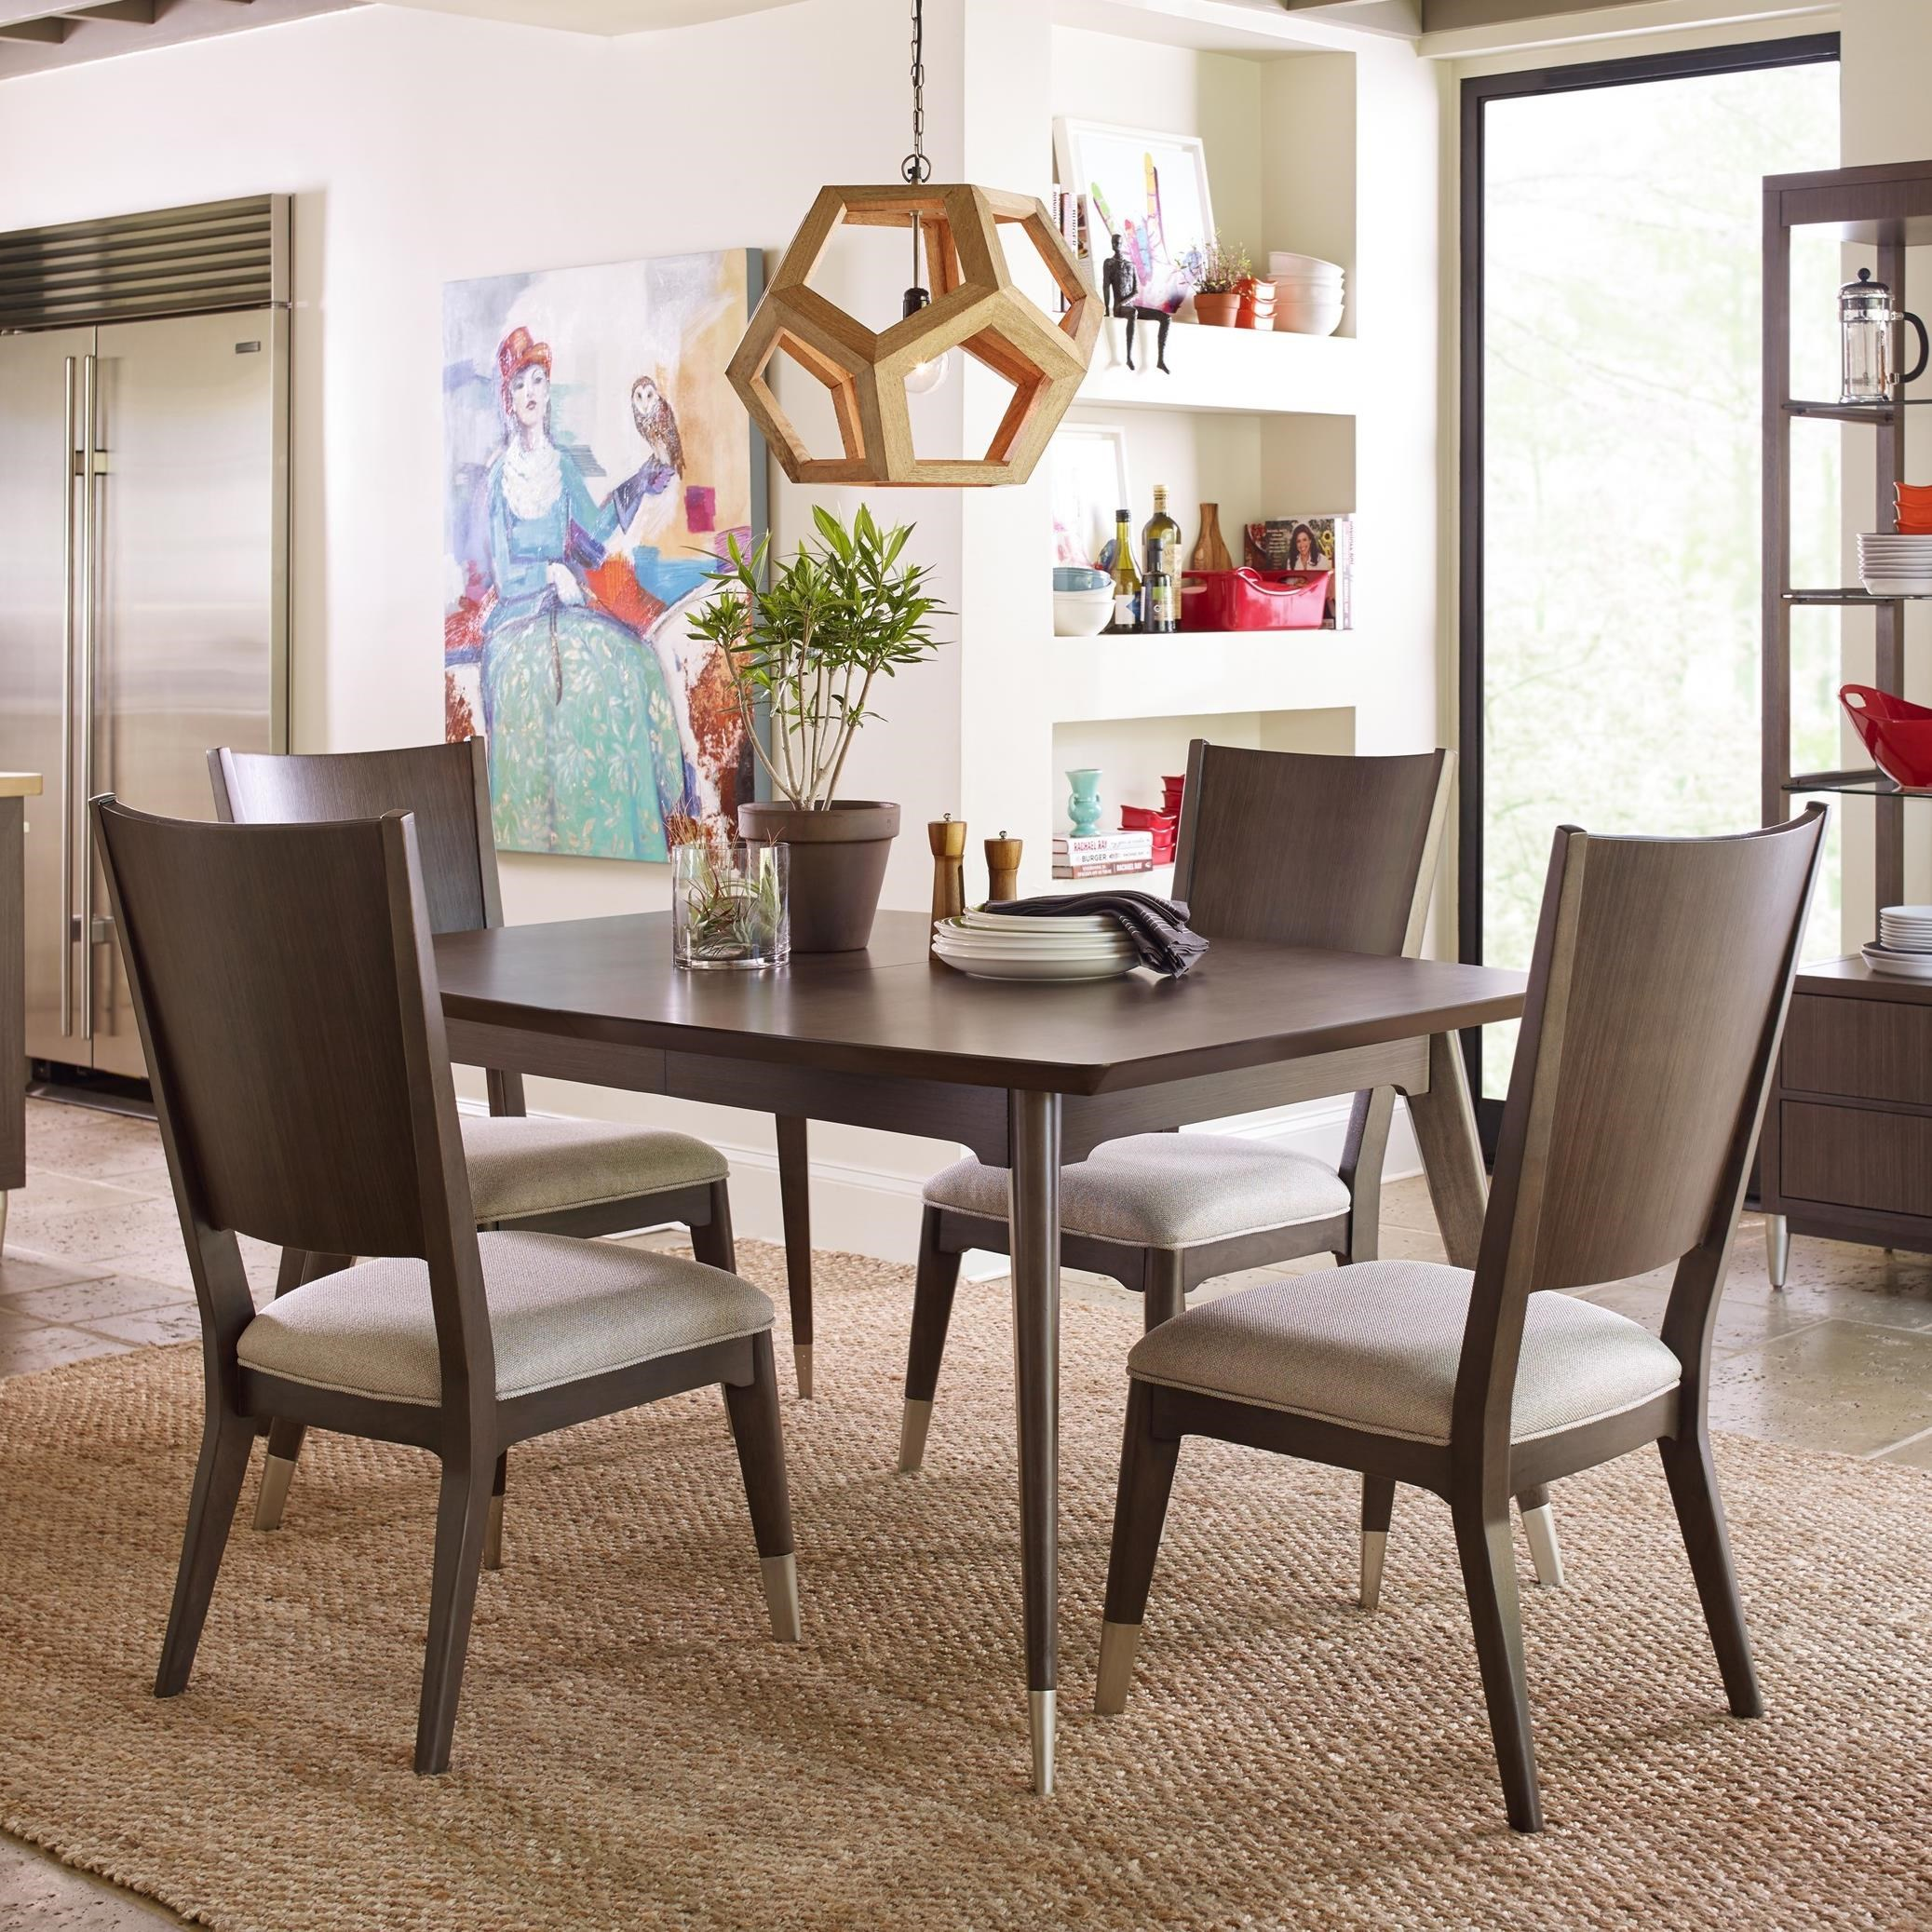 Rachael ray home by legacy classic soho mid century modern for Legacy classic dining room furniture